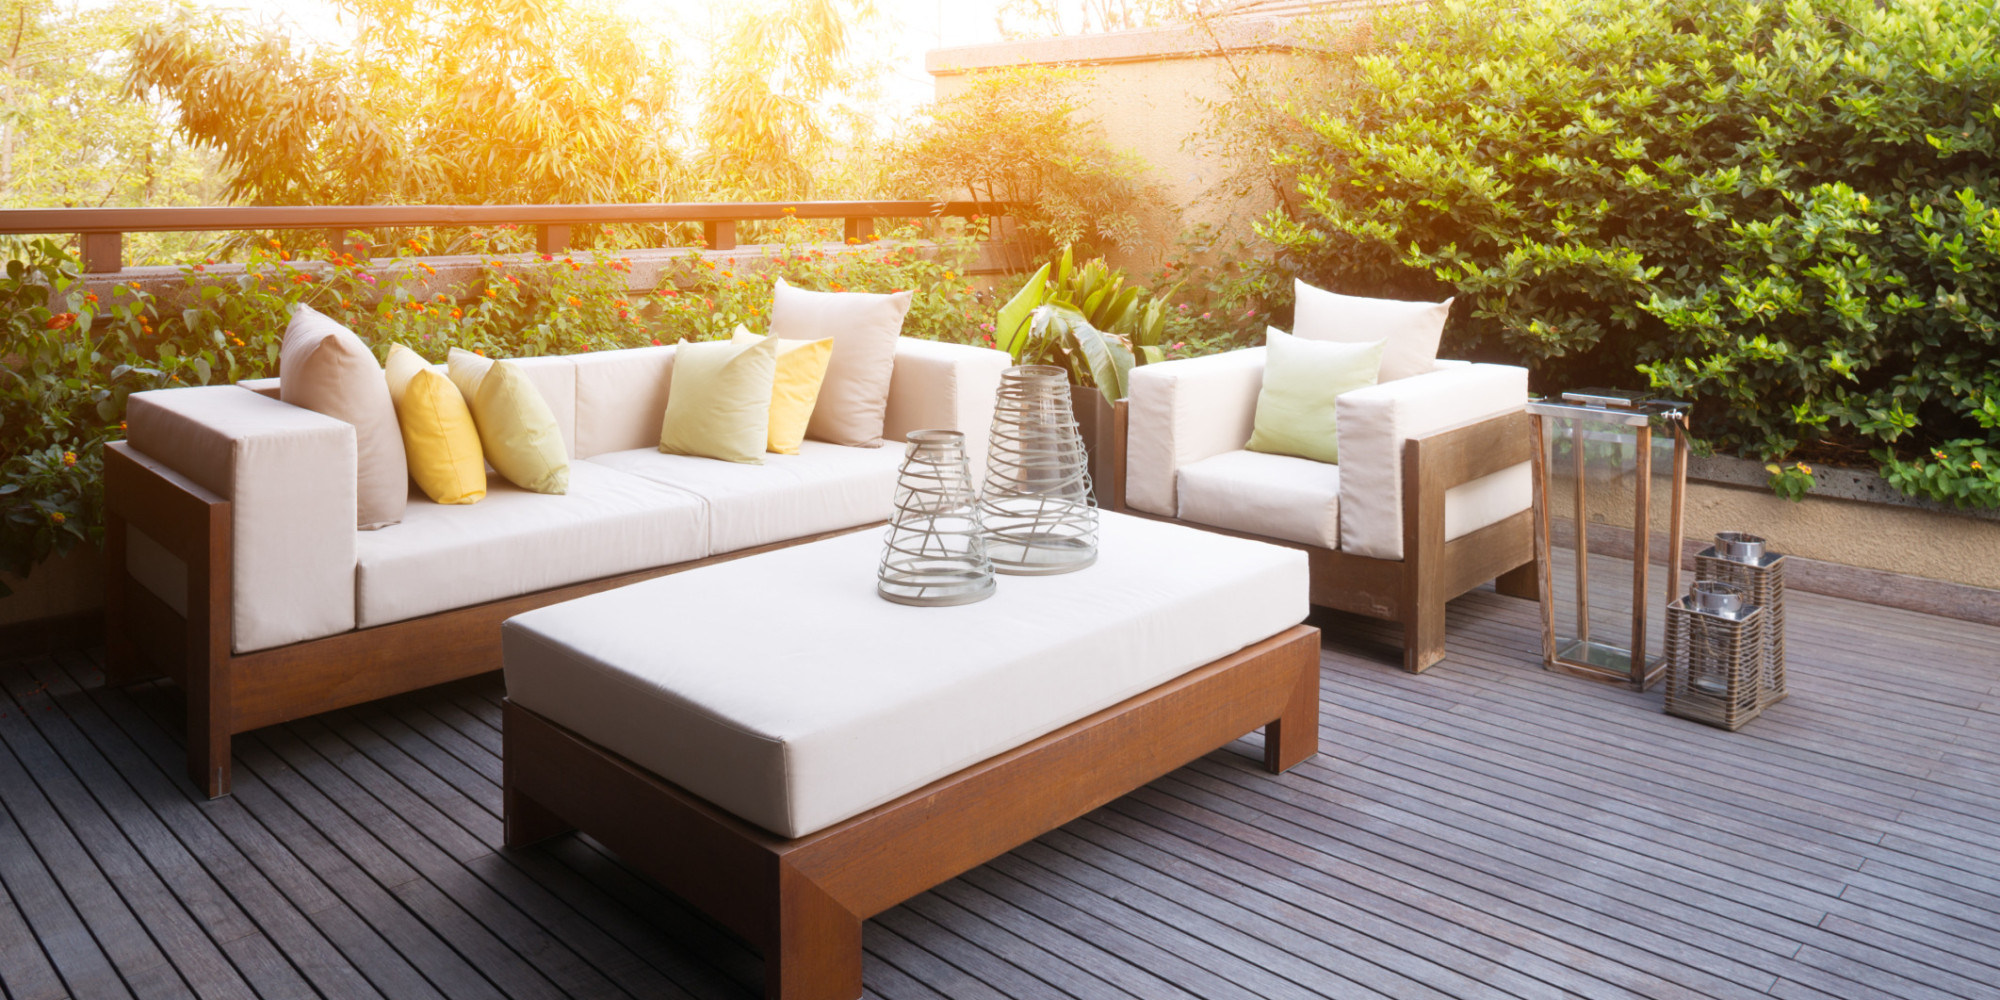 50 Beautiful How to Clean Vinyl Patio Furniture Outdoor